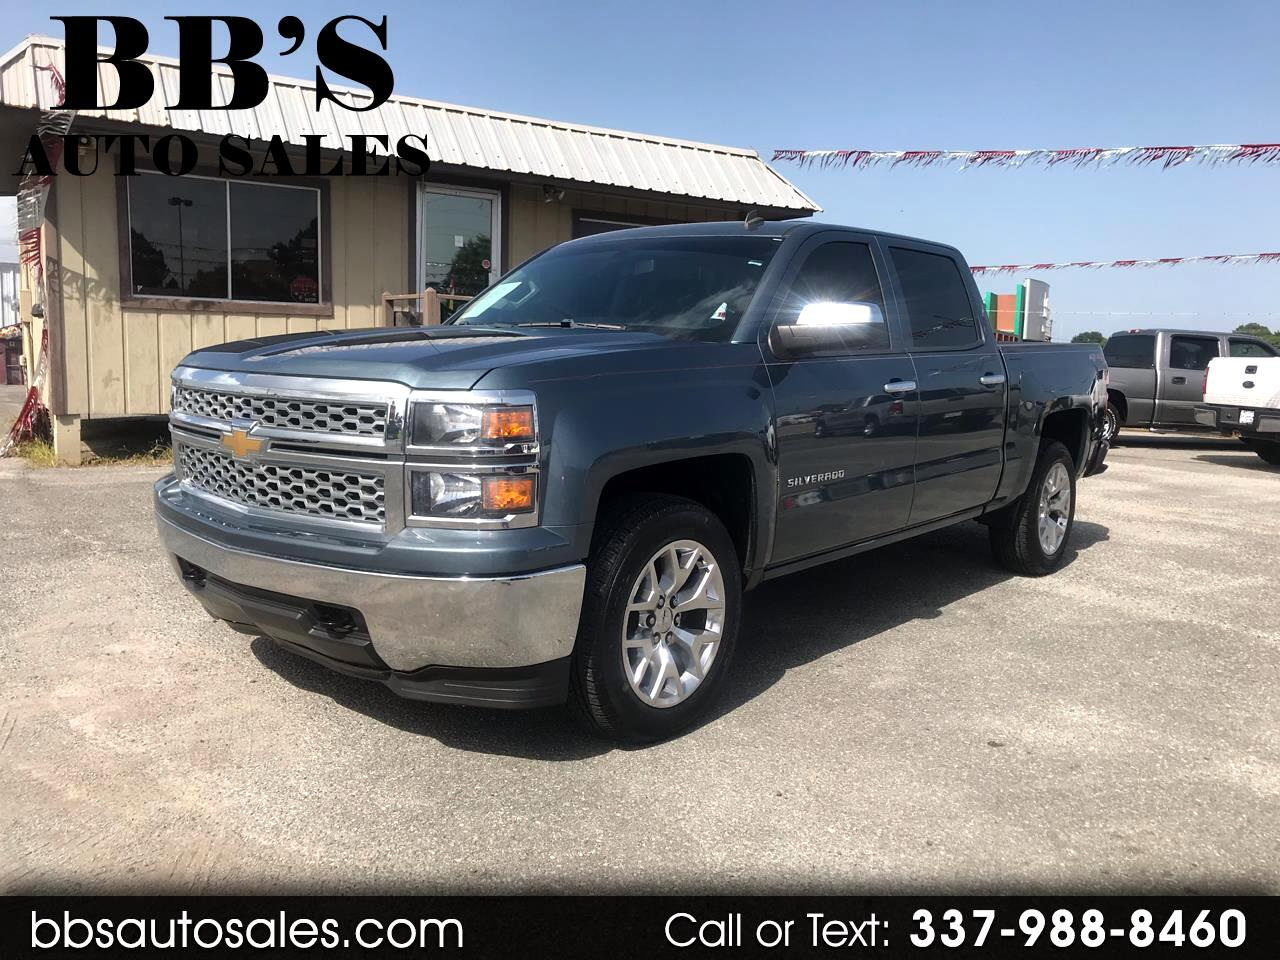 2014 Chevrolet Silverado 1500 2LT Crew Cab 4WD